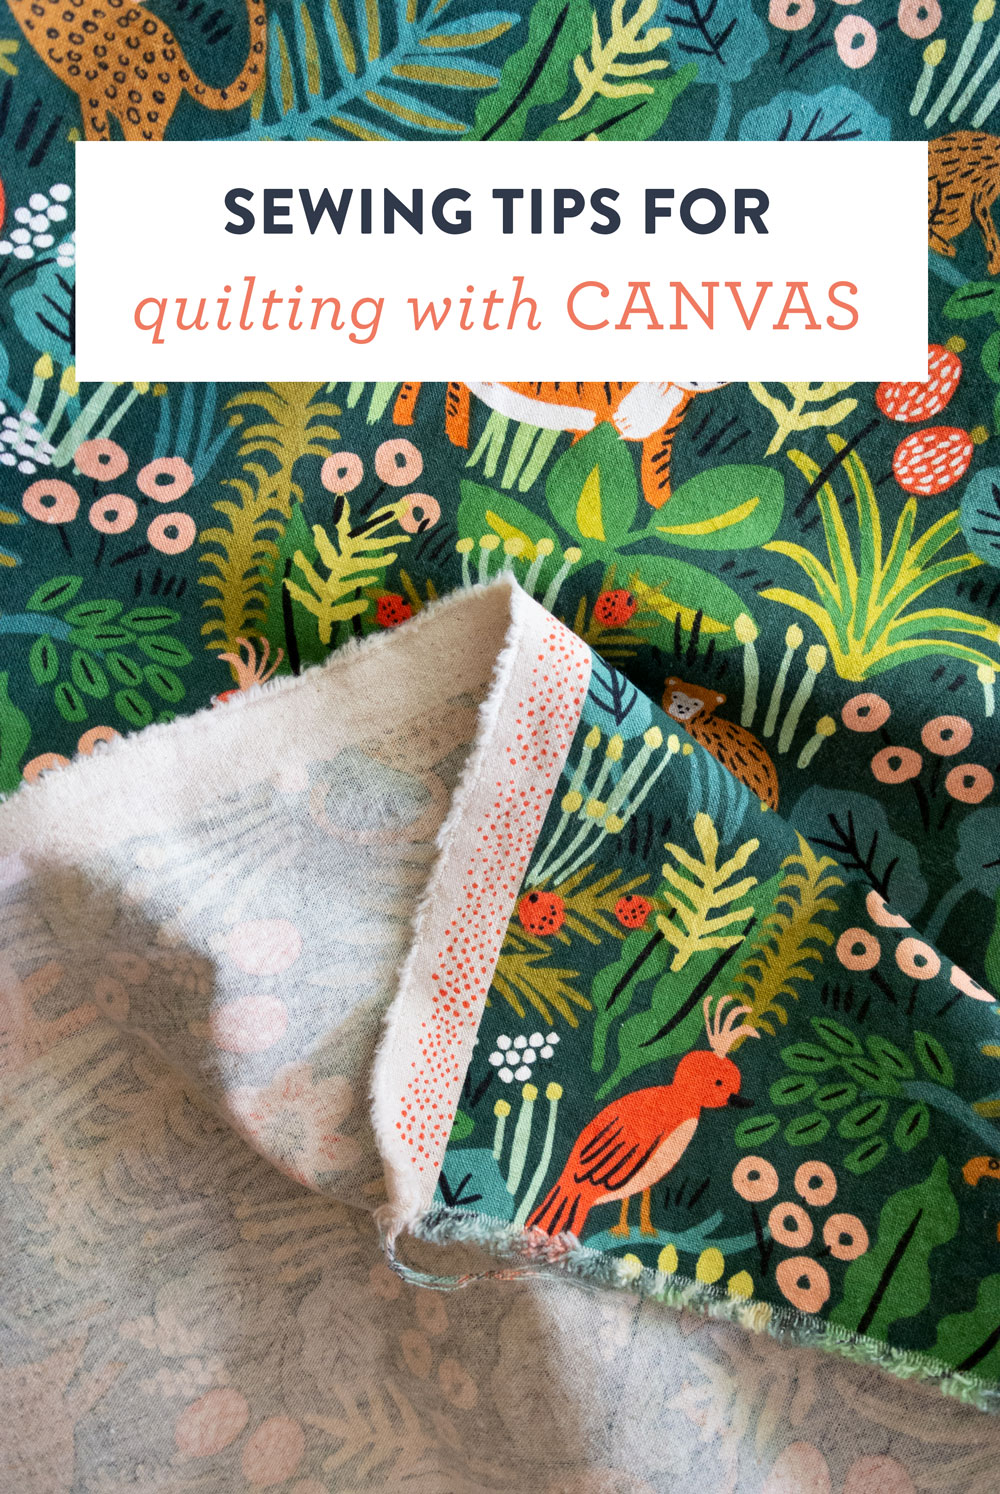 Sew with canvas in confidence! Learn the tricks, tools, and tips for using canvas in your next quilt project.